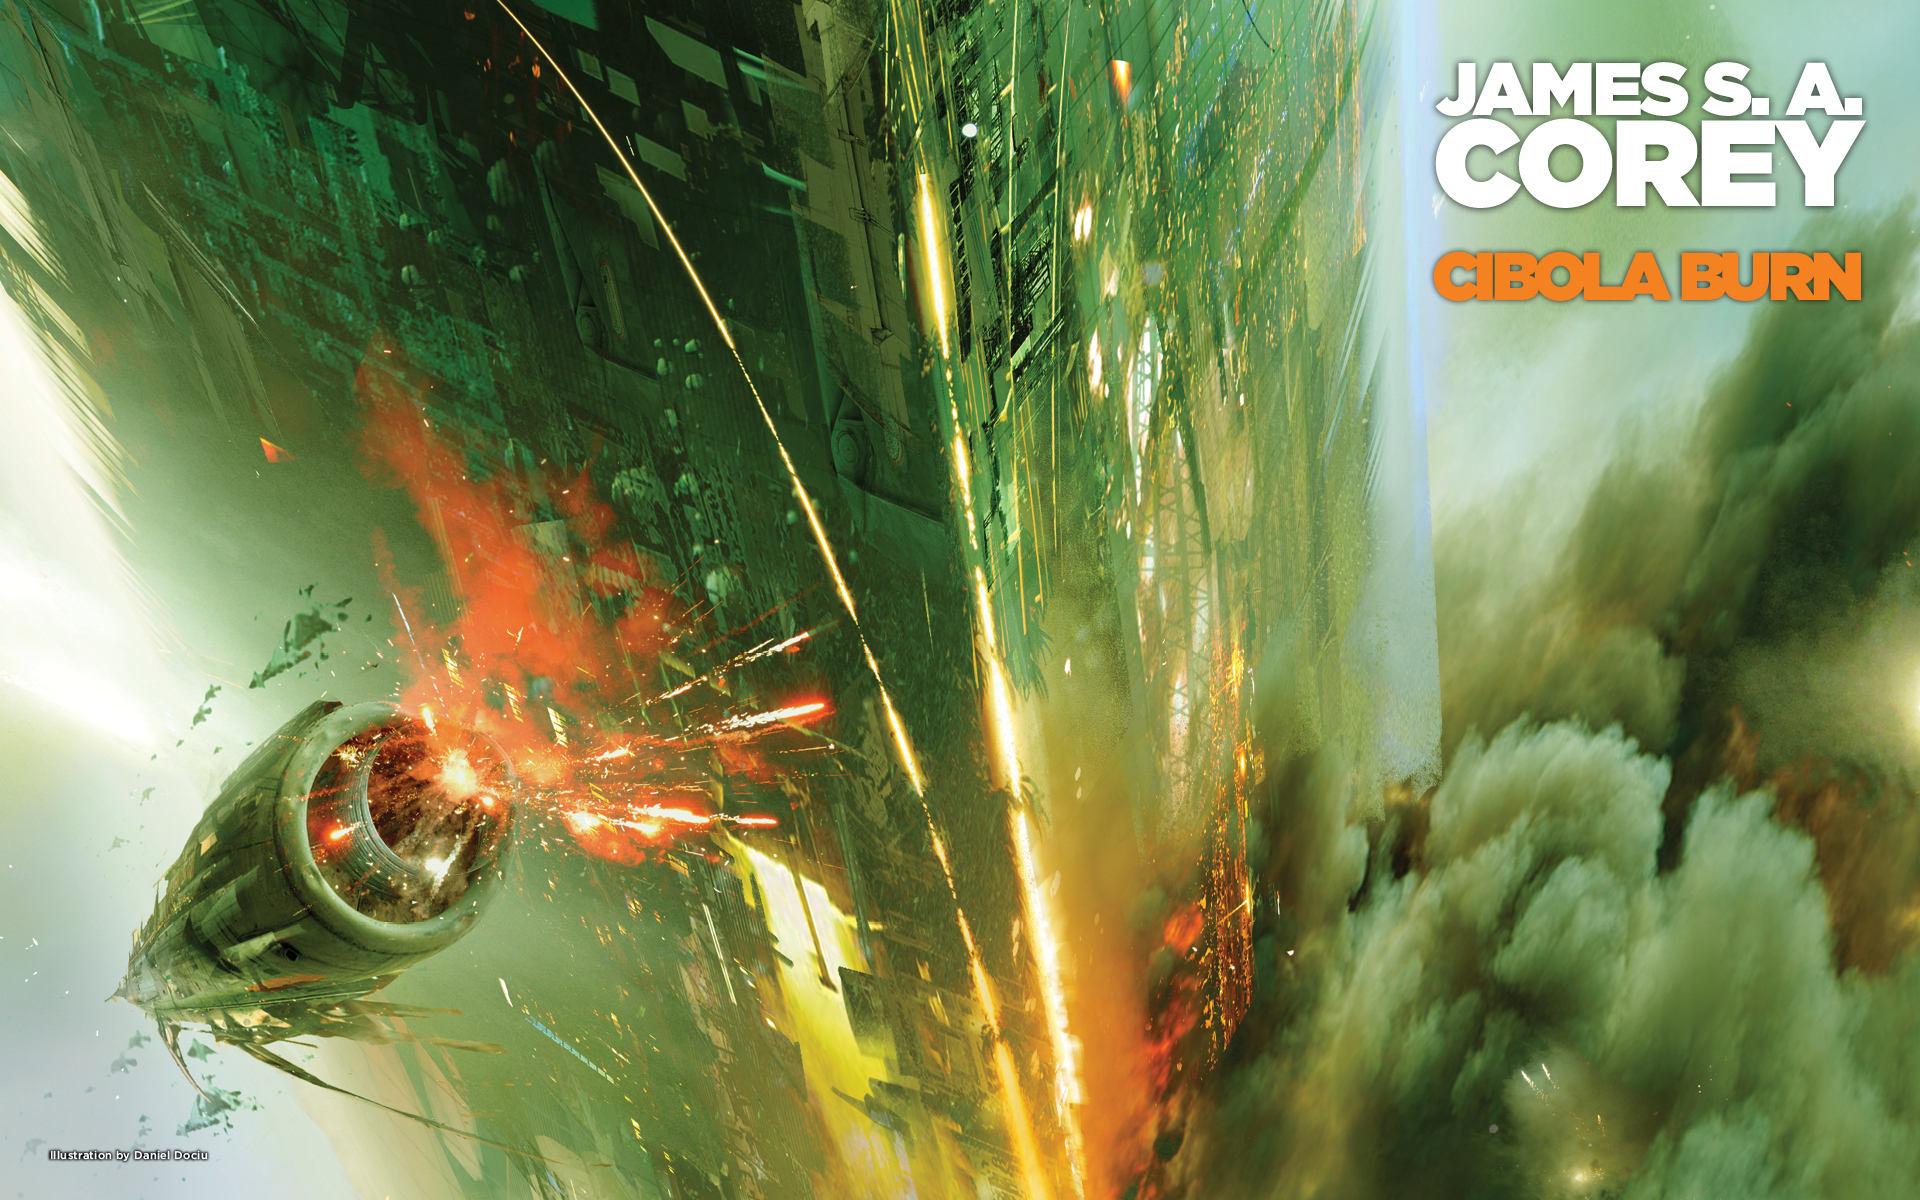 New Wallpapers Cibola Burn By James S A Corey Orbit